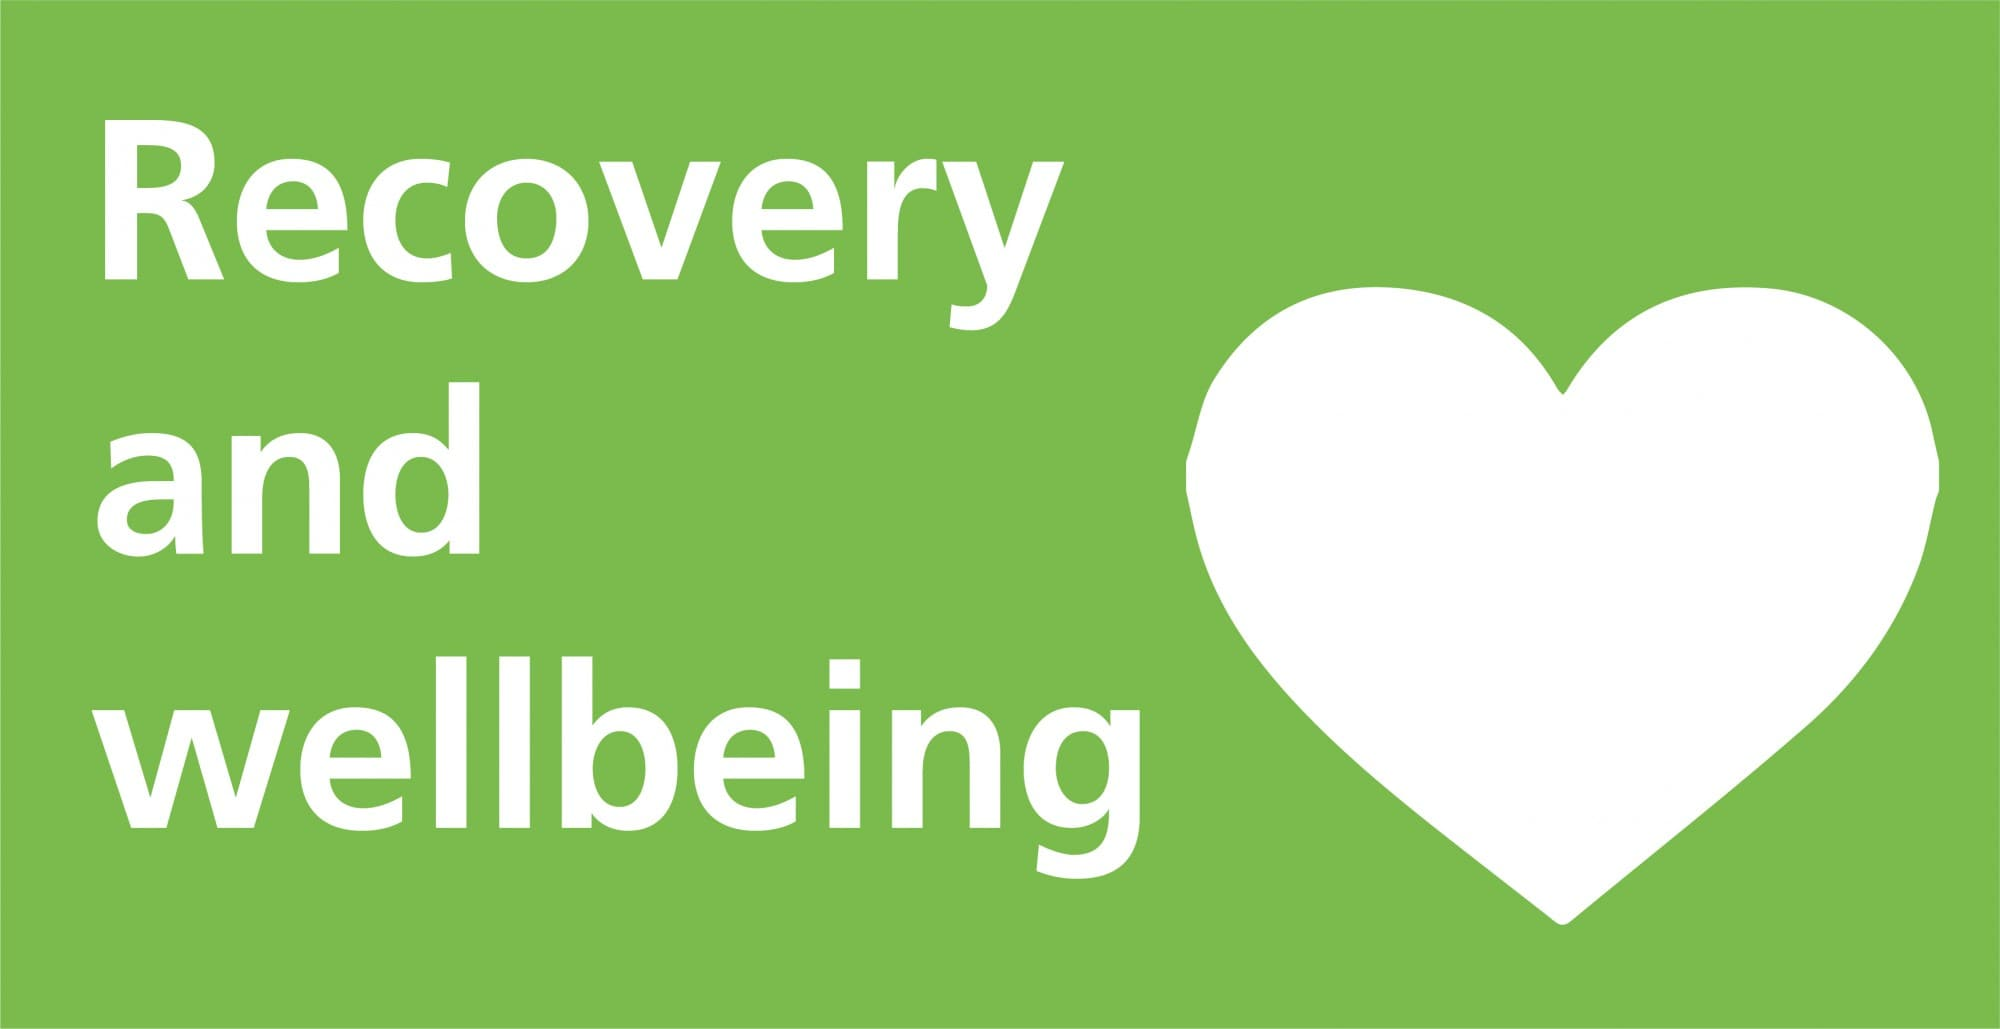 Recovery and wellbeing